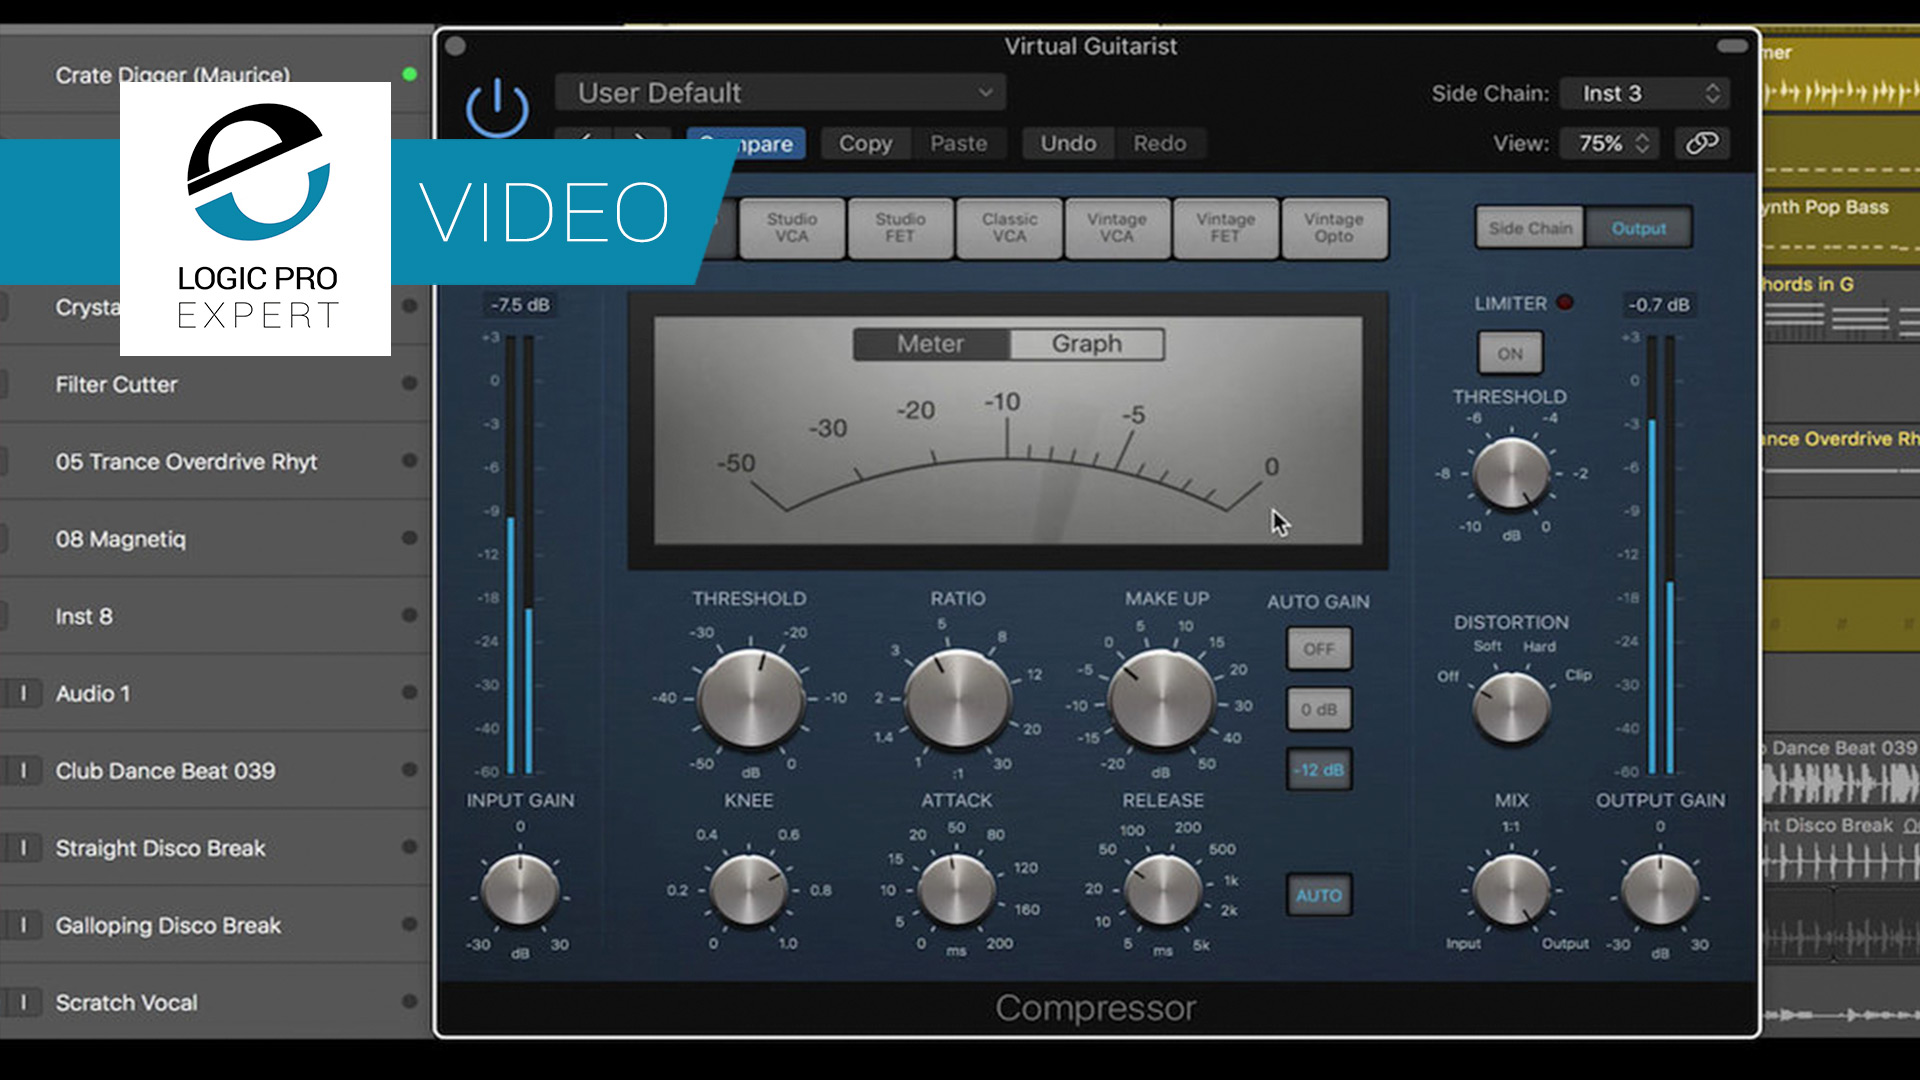 a screenshot of the Compressor plugin in Logic Pro X which can be used for sidechaining